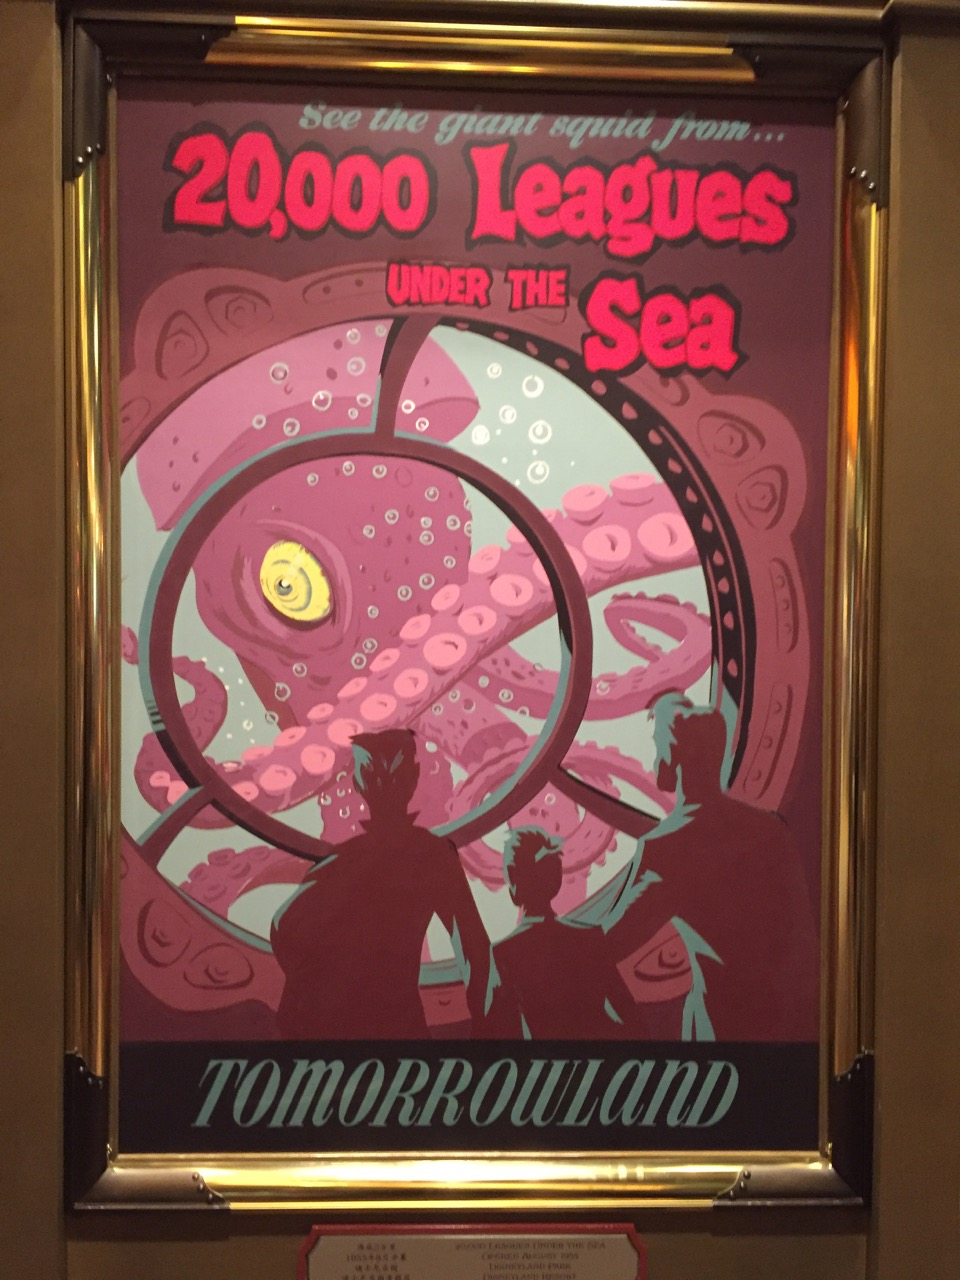 20,000 Leagues Under the Sea at Disneyland? It's a great poster, but I'm not sure what it's purpose is. Photo by J. Jeff Kober.